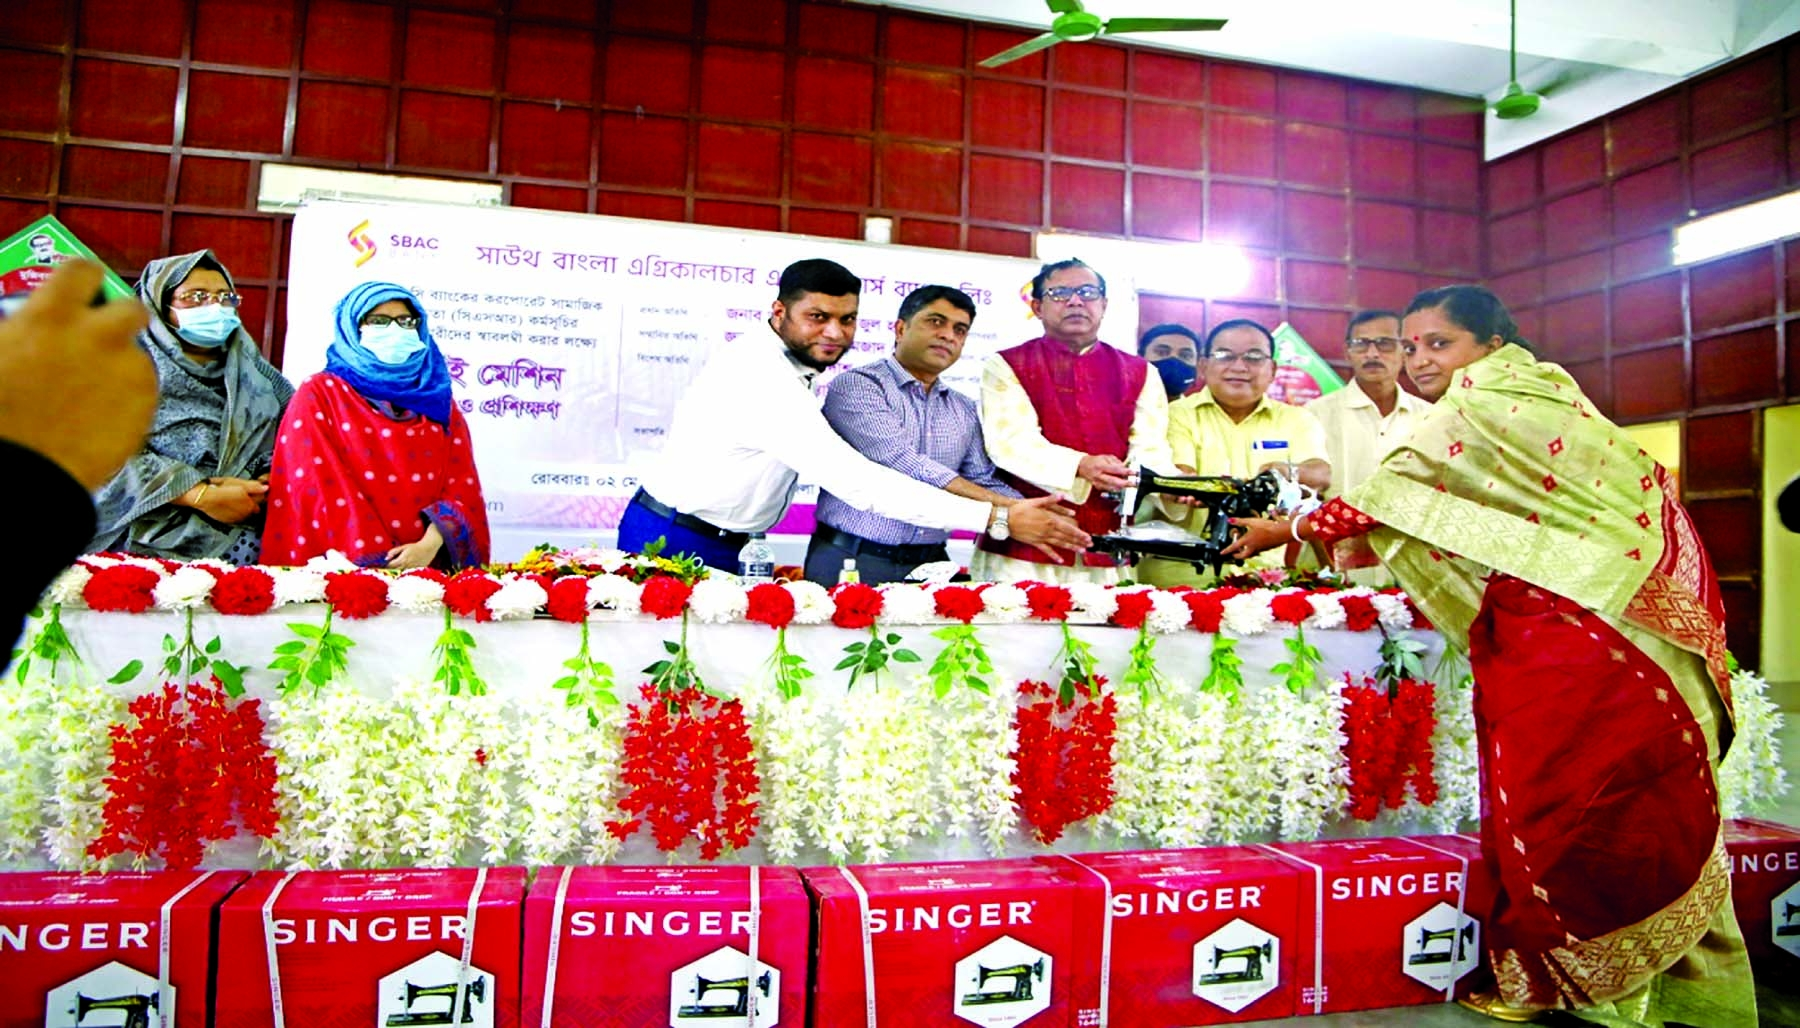 SBAC Bank Chairman SM Amzad Hossain along with ANM Faizul Haque, Deputy Commissioner of Bagerhat distributing sewing machines among 100 women under the bank's CSR fund at Fakirhat Upazila Prishad in Bagerhat on Sunday. Senior officials of the bank and local elites were present.